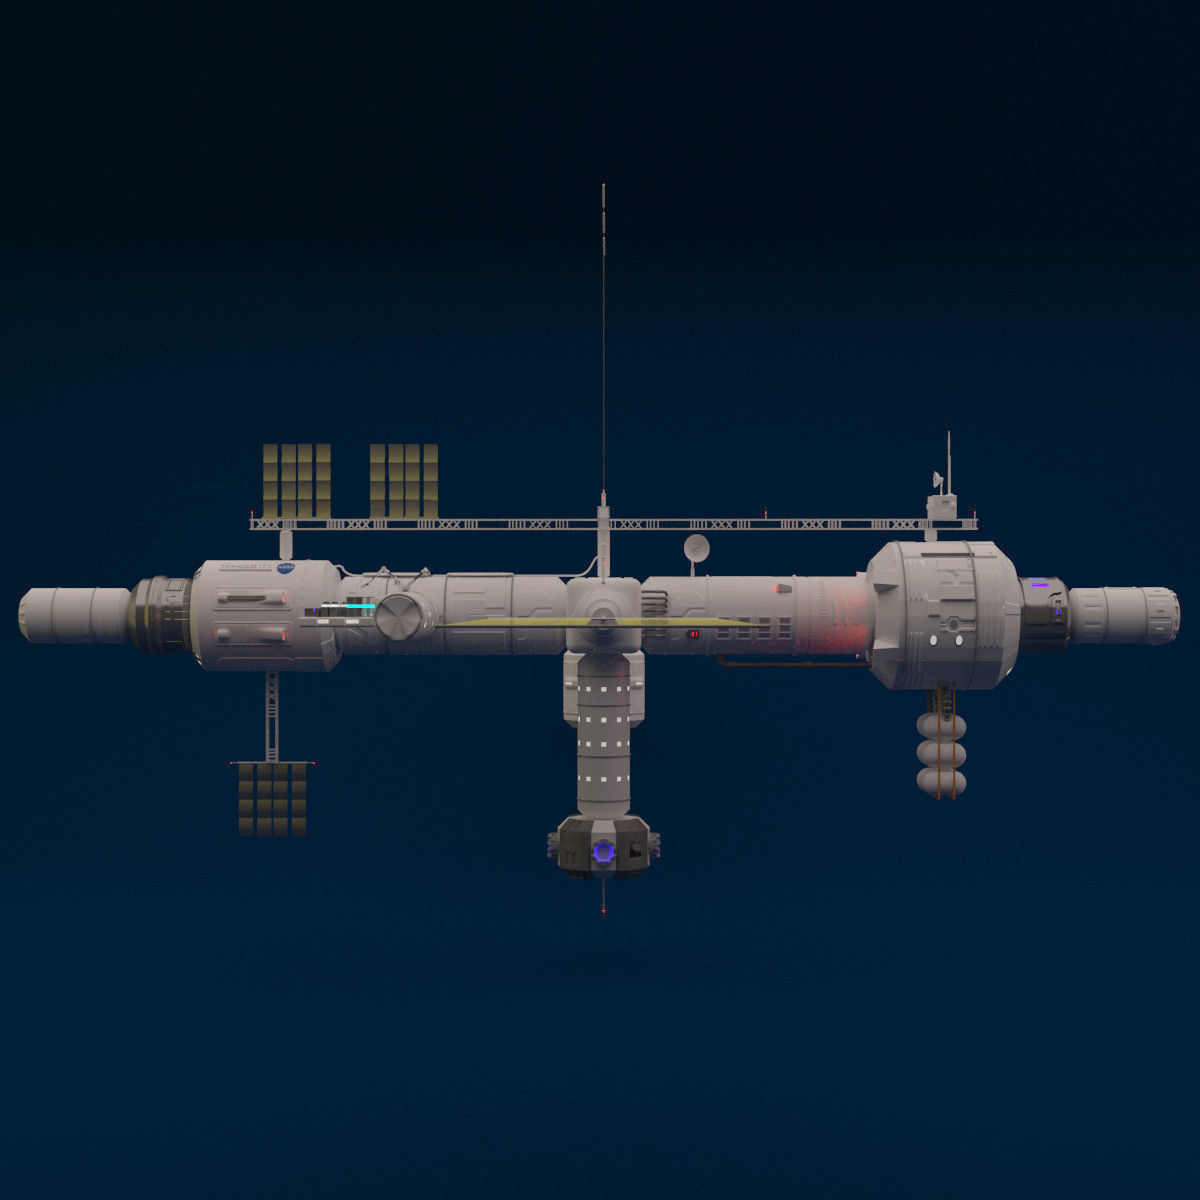 space station 3d models - photo #12